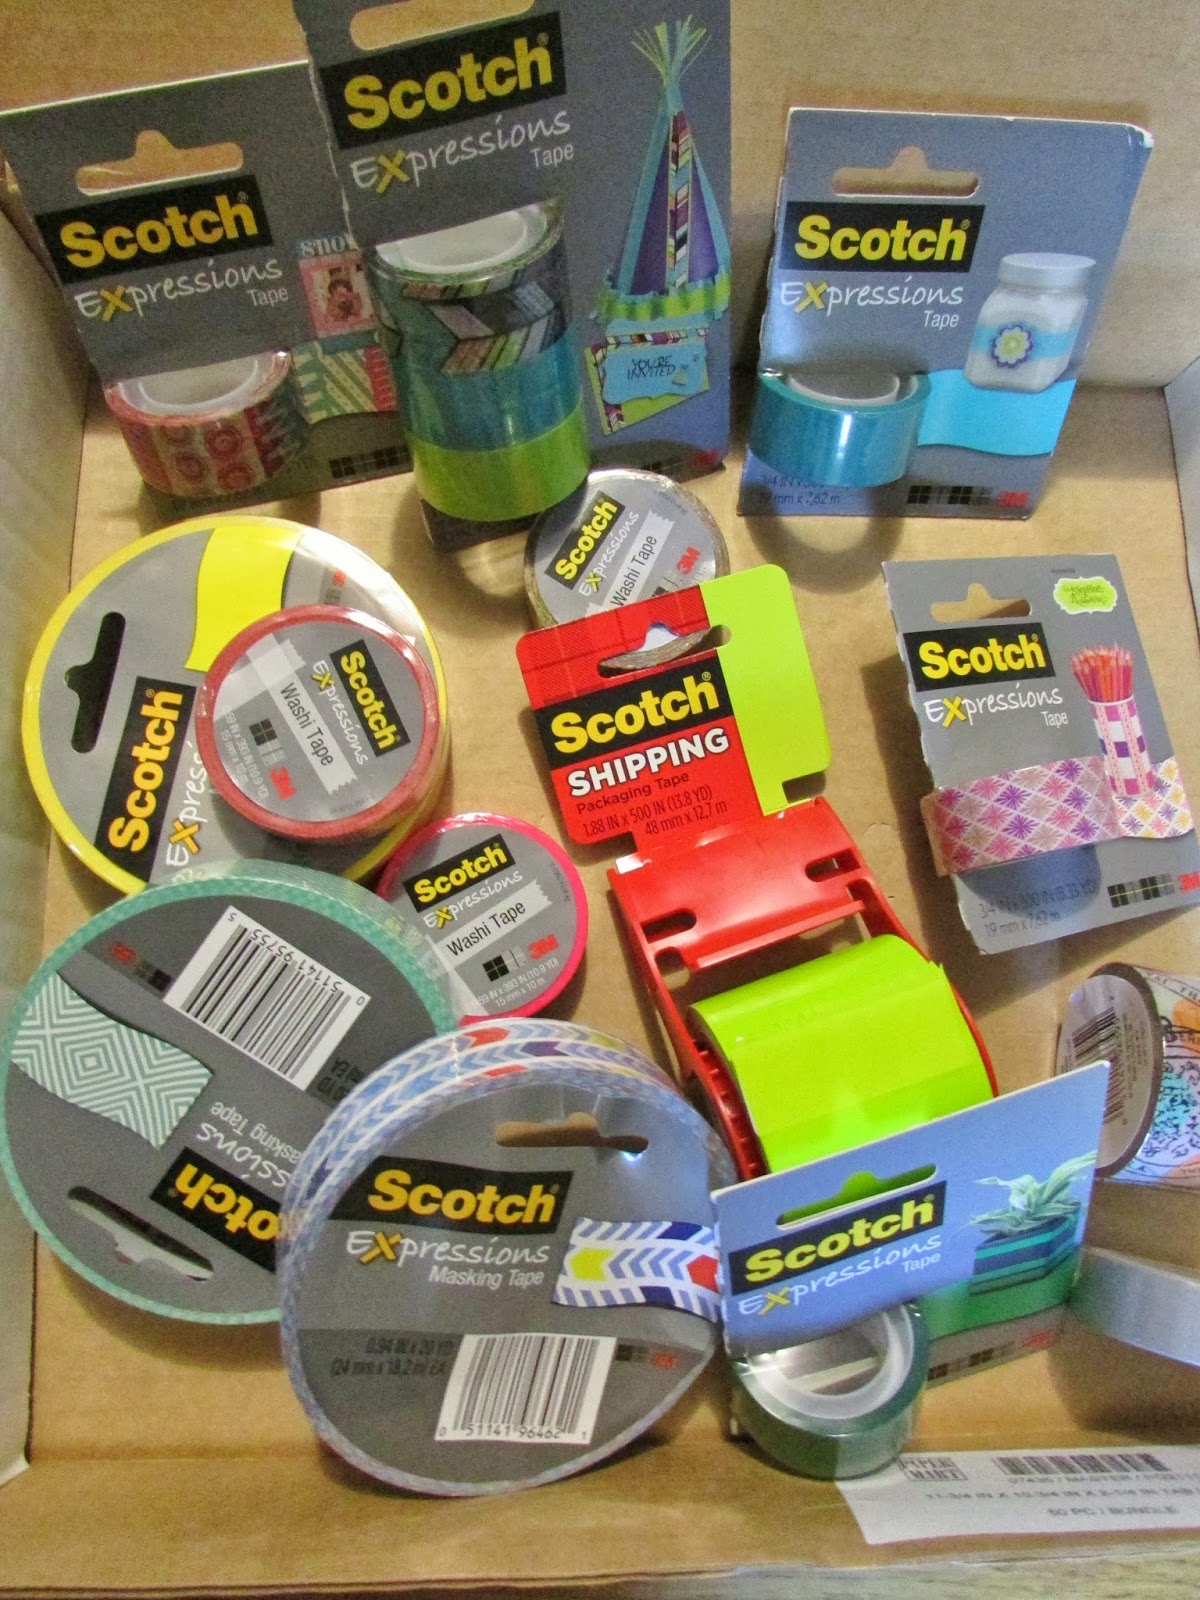 Heck Of A Bunch: Scotch Expressions Tape - Review and Giveaway